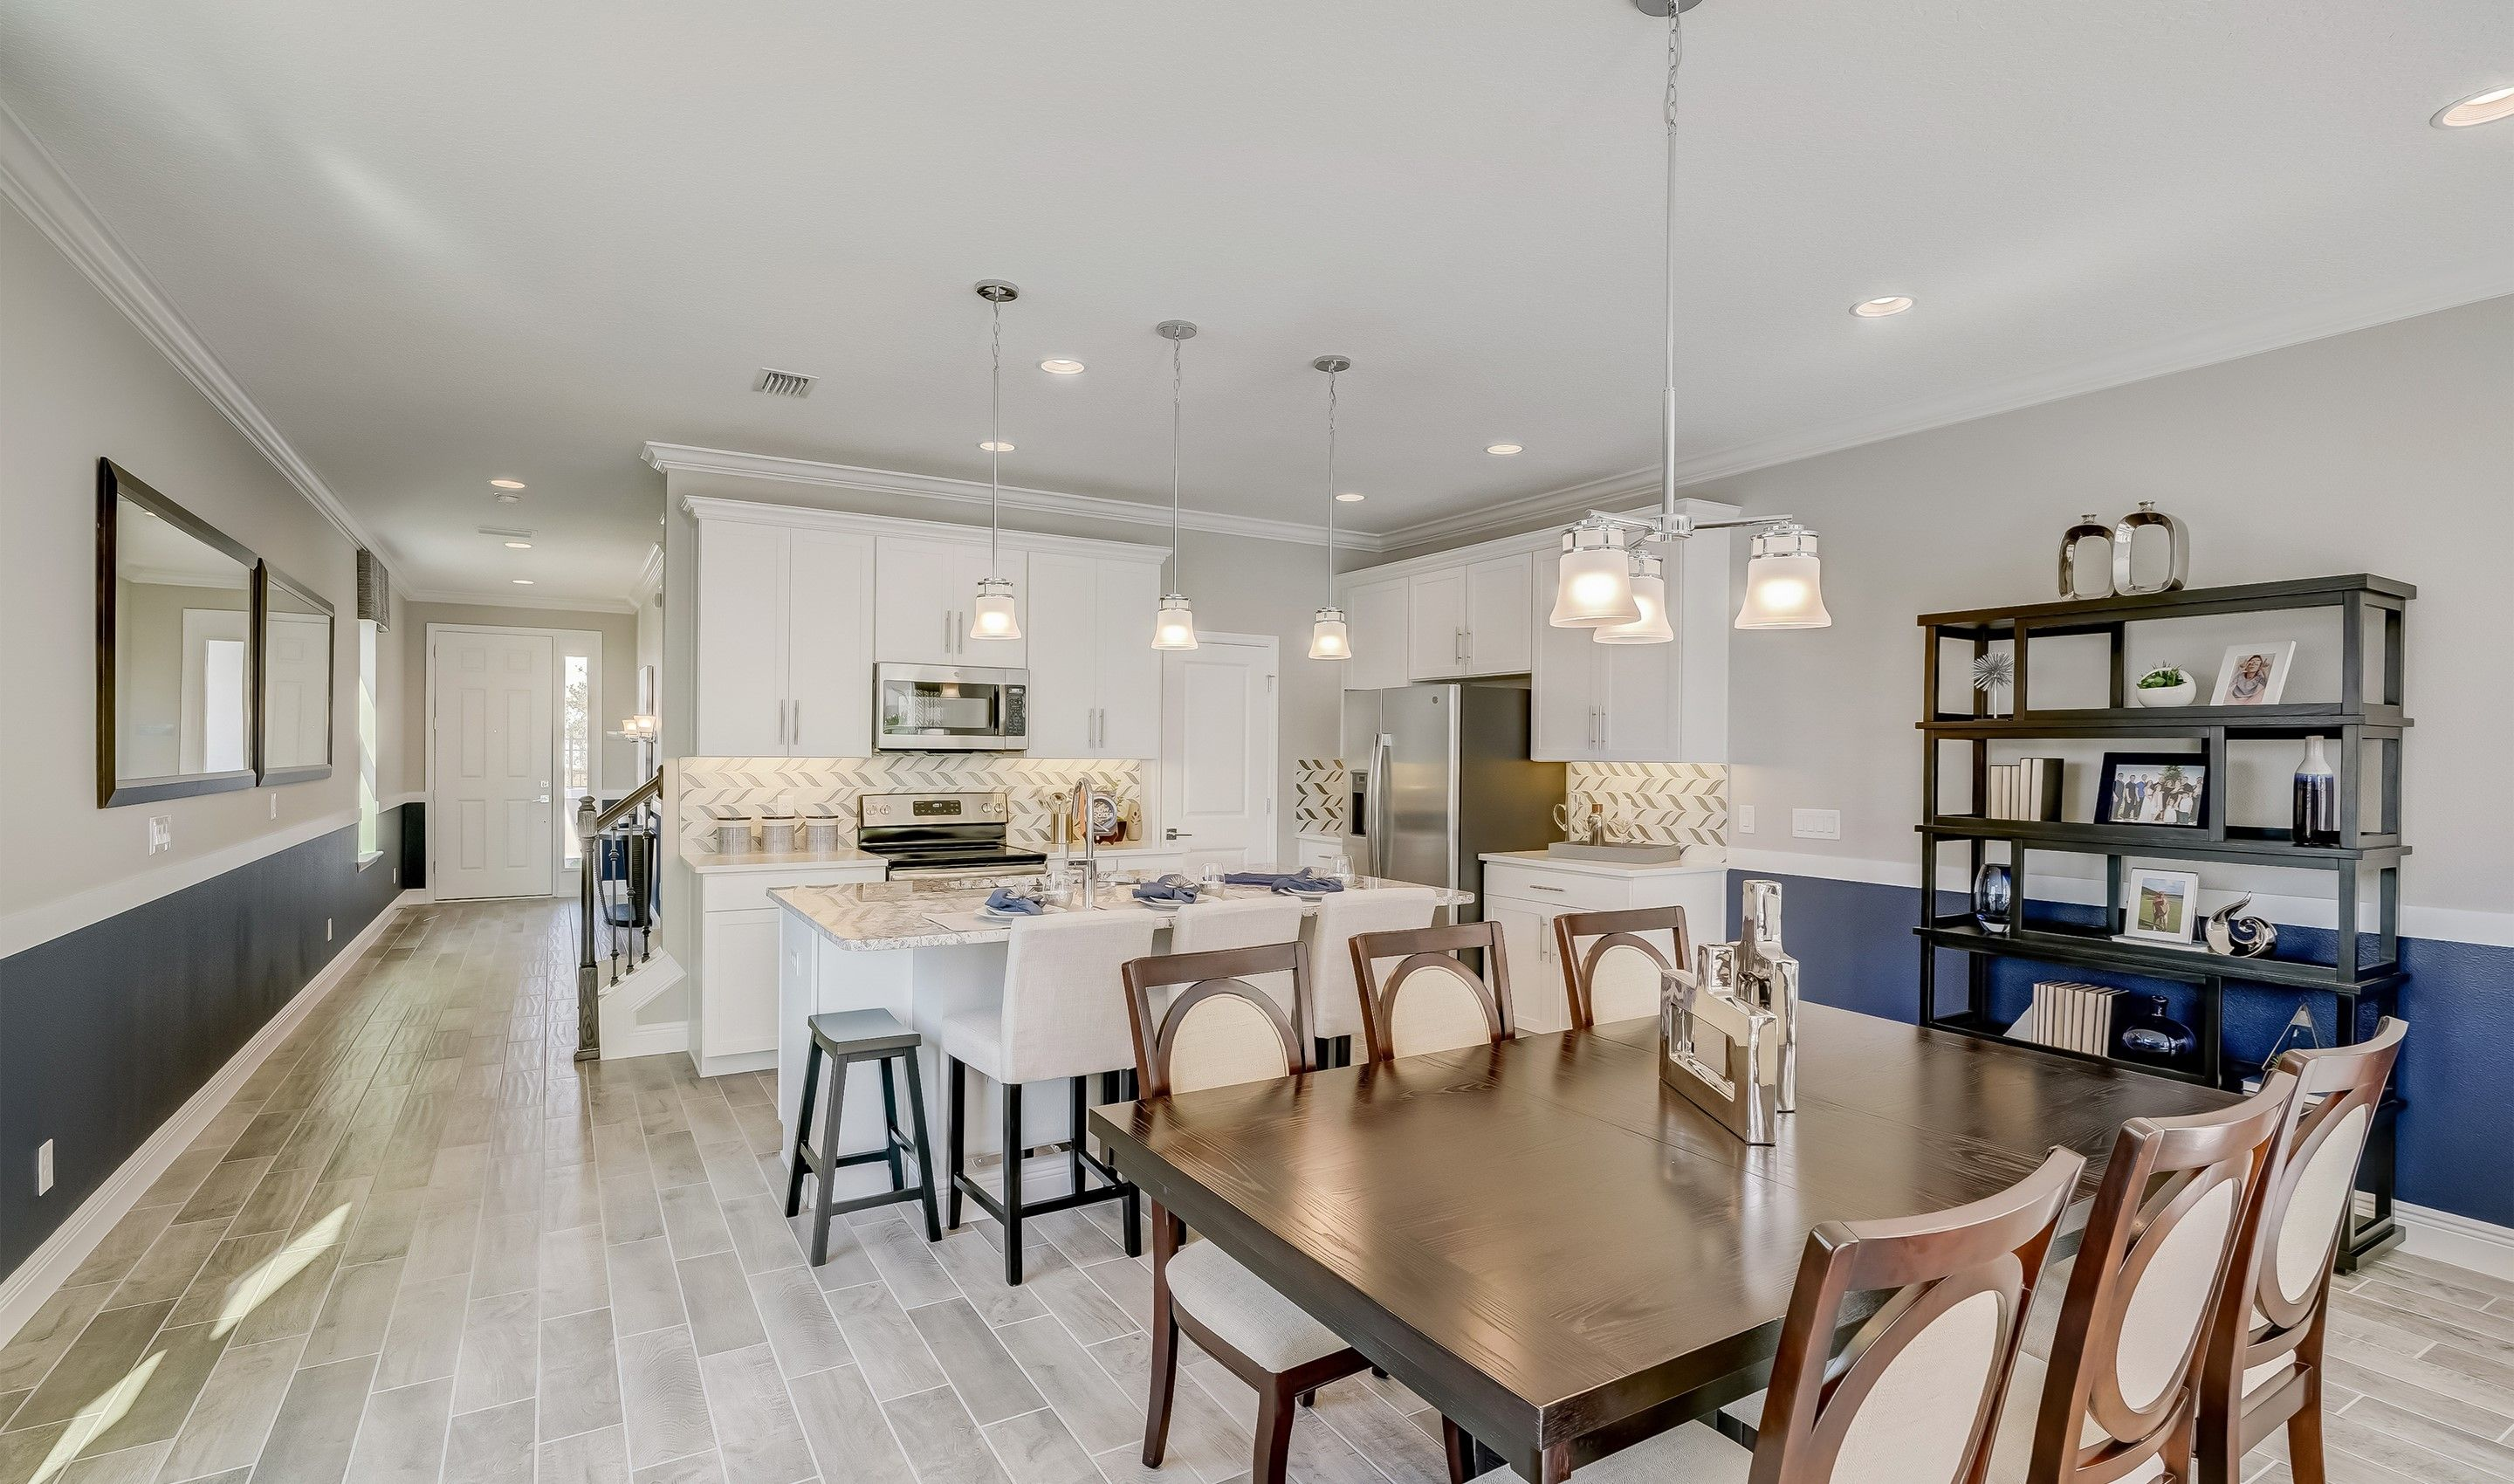 Kitchen featured in the Cascavel II By K. Hovnanian® Homes in Orlando, FL